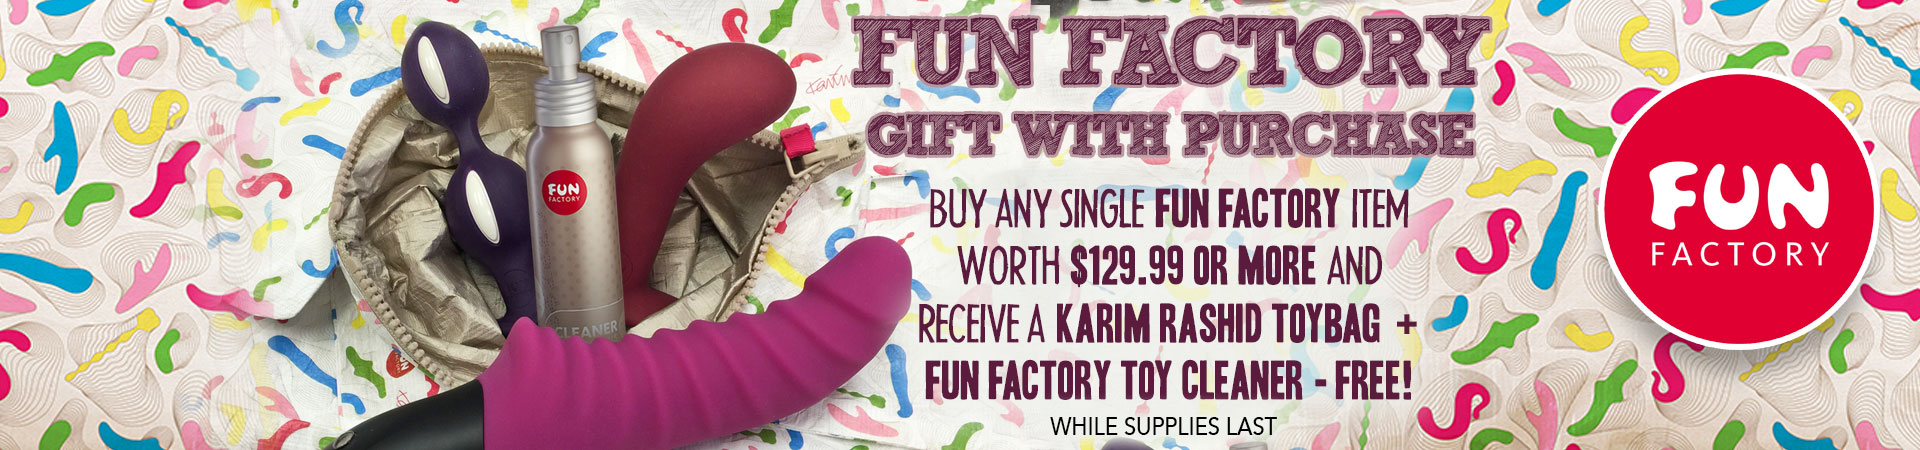 Fun Factory Gift With Purchase - While Supplies Last